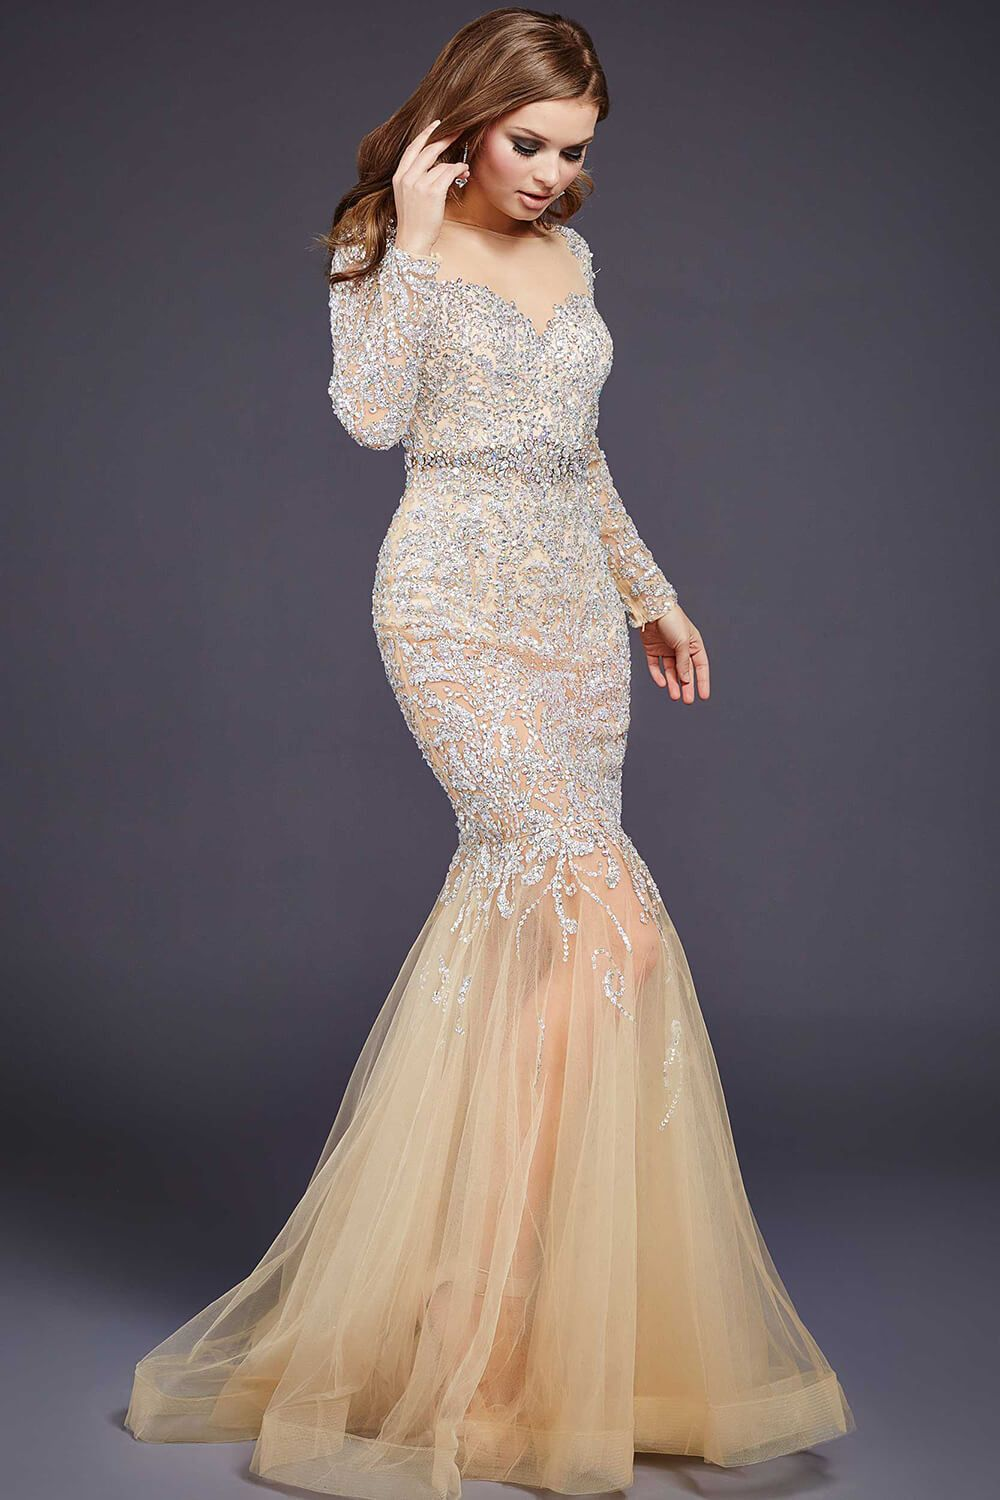 Long sleeve prom dresses jovani